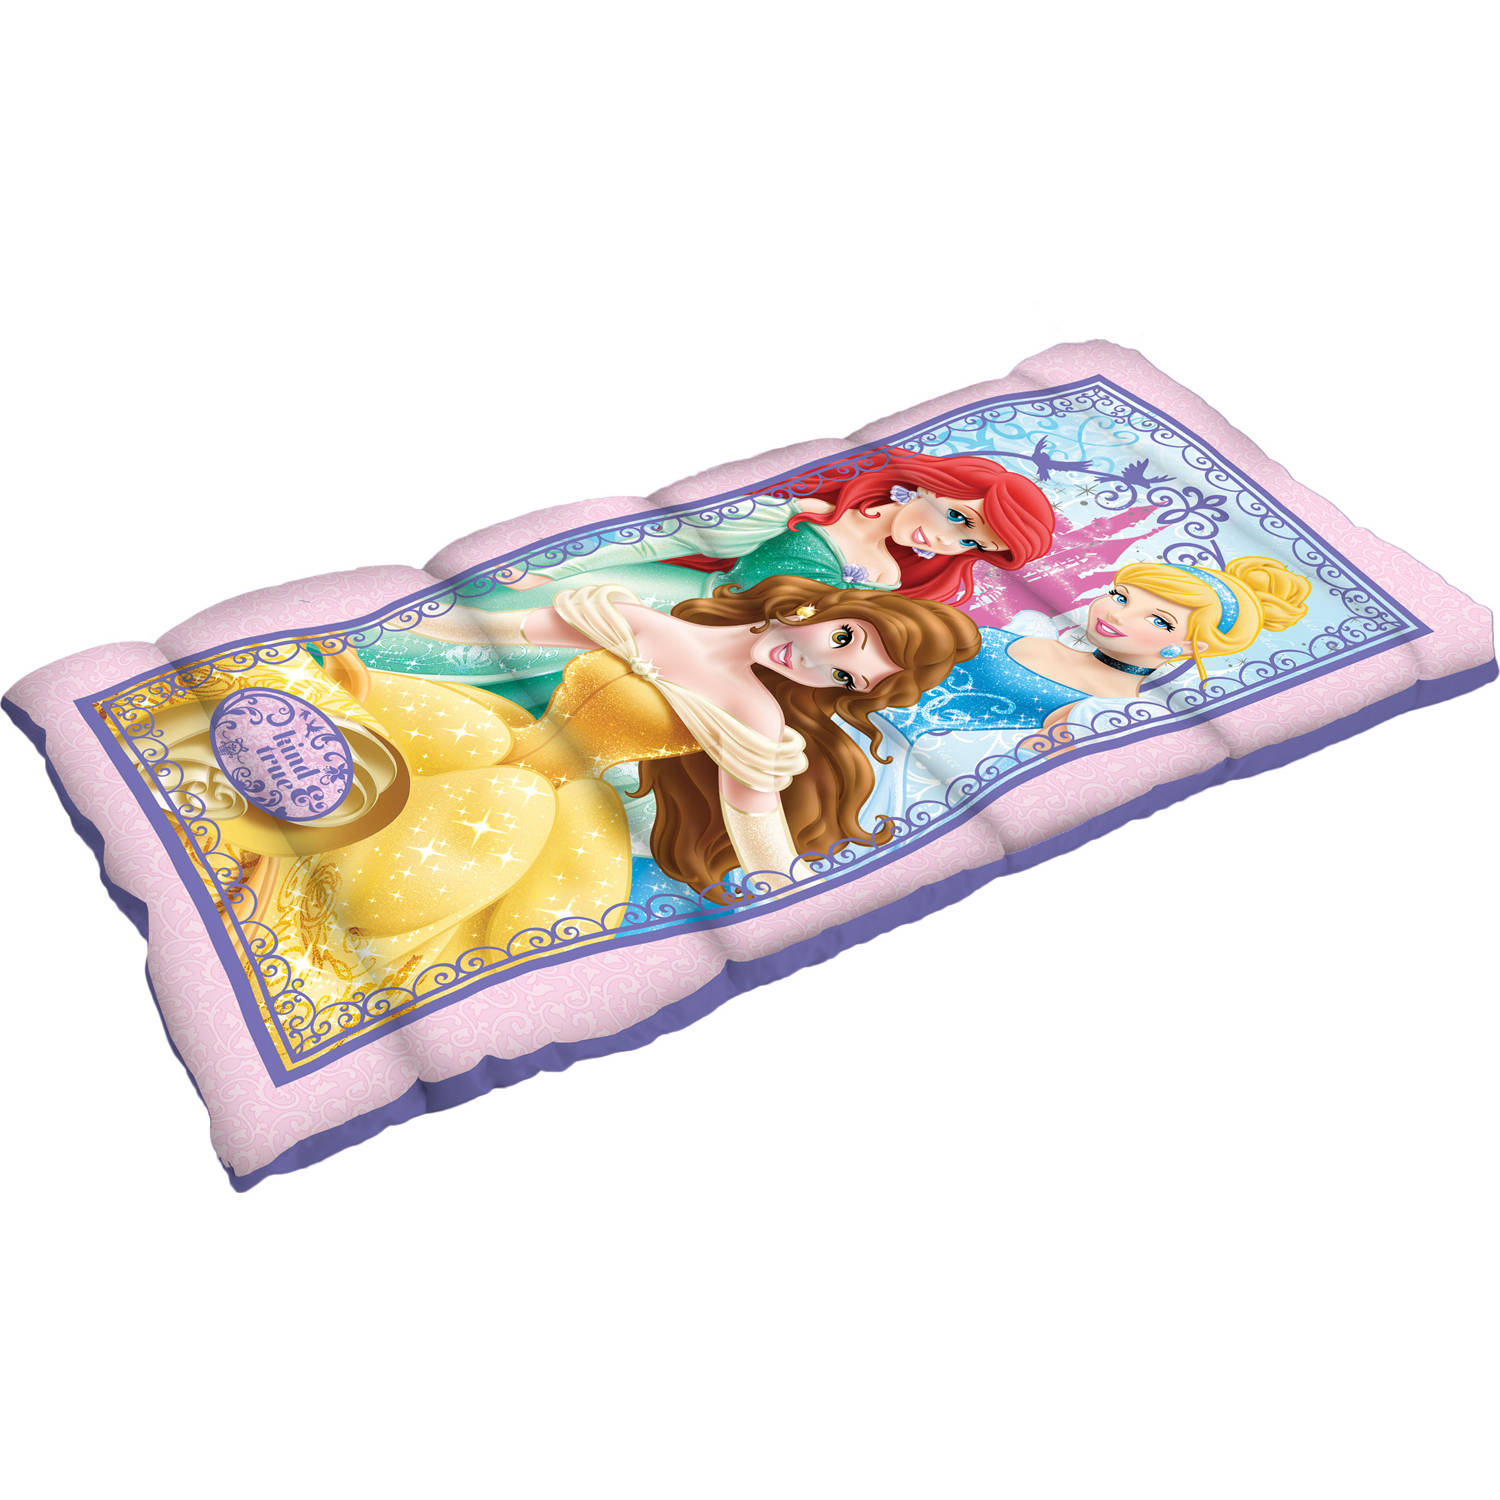 Kids' Sleeping Mats. Showing 40 of results that match your query. Search Product Result. Disney Frozen Elsa and Anna Indoor Outdoor Kids Sleeping Bag and Backpack Set. Clearance. Product Image. Items sold by devforum.ml that are marked eligible on the product and checkout page with the logo ;.